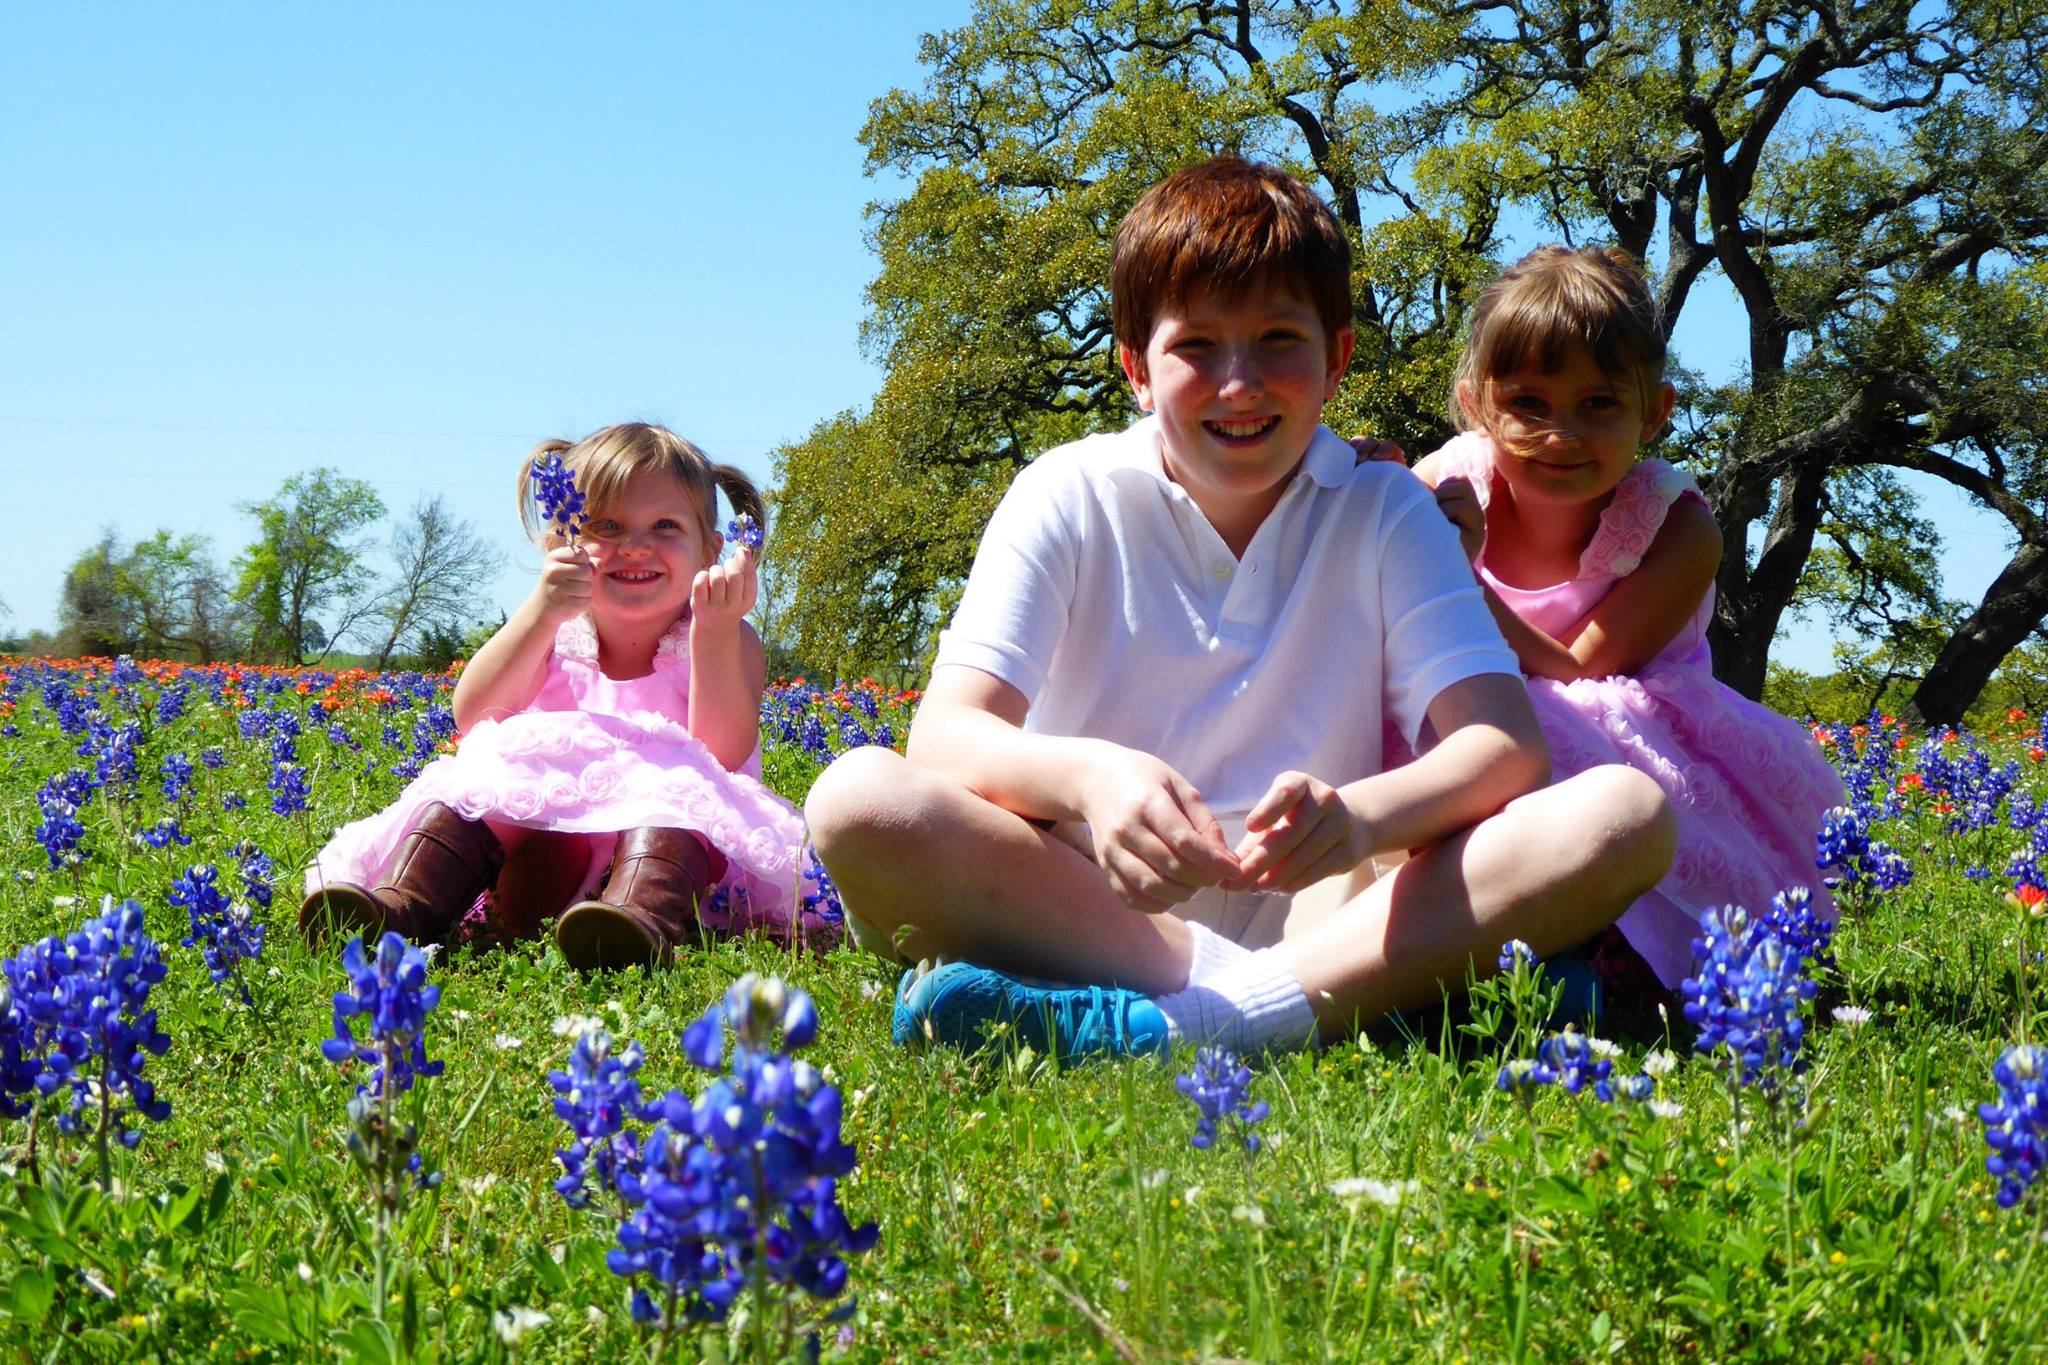 three kids posing for a photo in a Texas bluebonnet field, 2 little girls in pink dresses with blonde hair and one tween boy with red hair